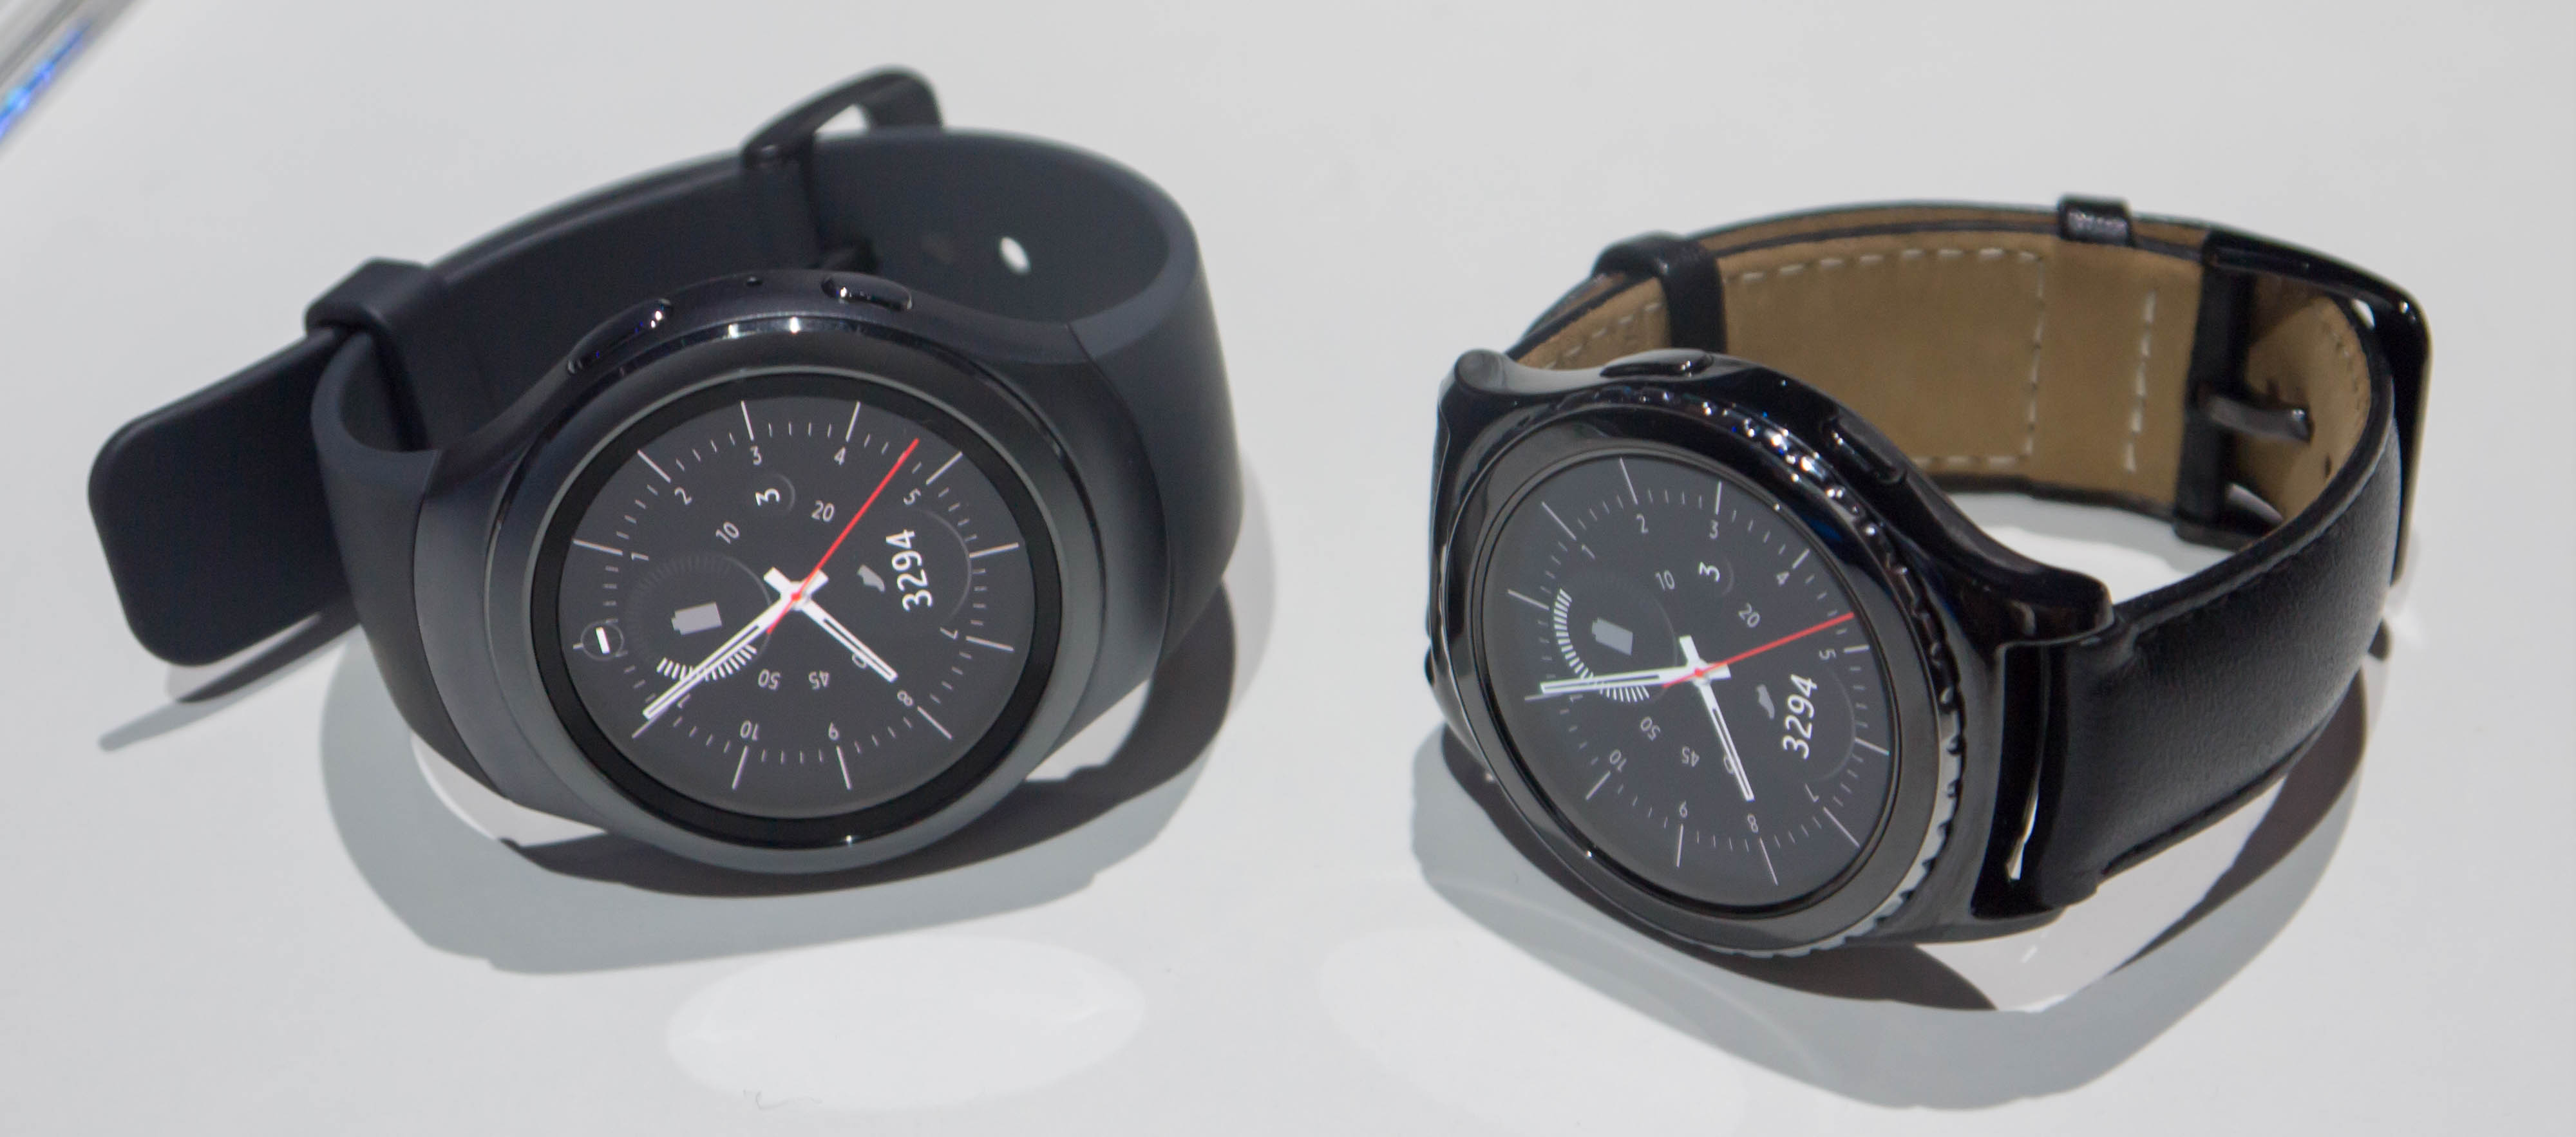 Samsung Gear S2 Launch Event & Hands-On